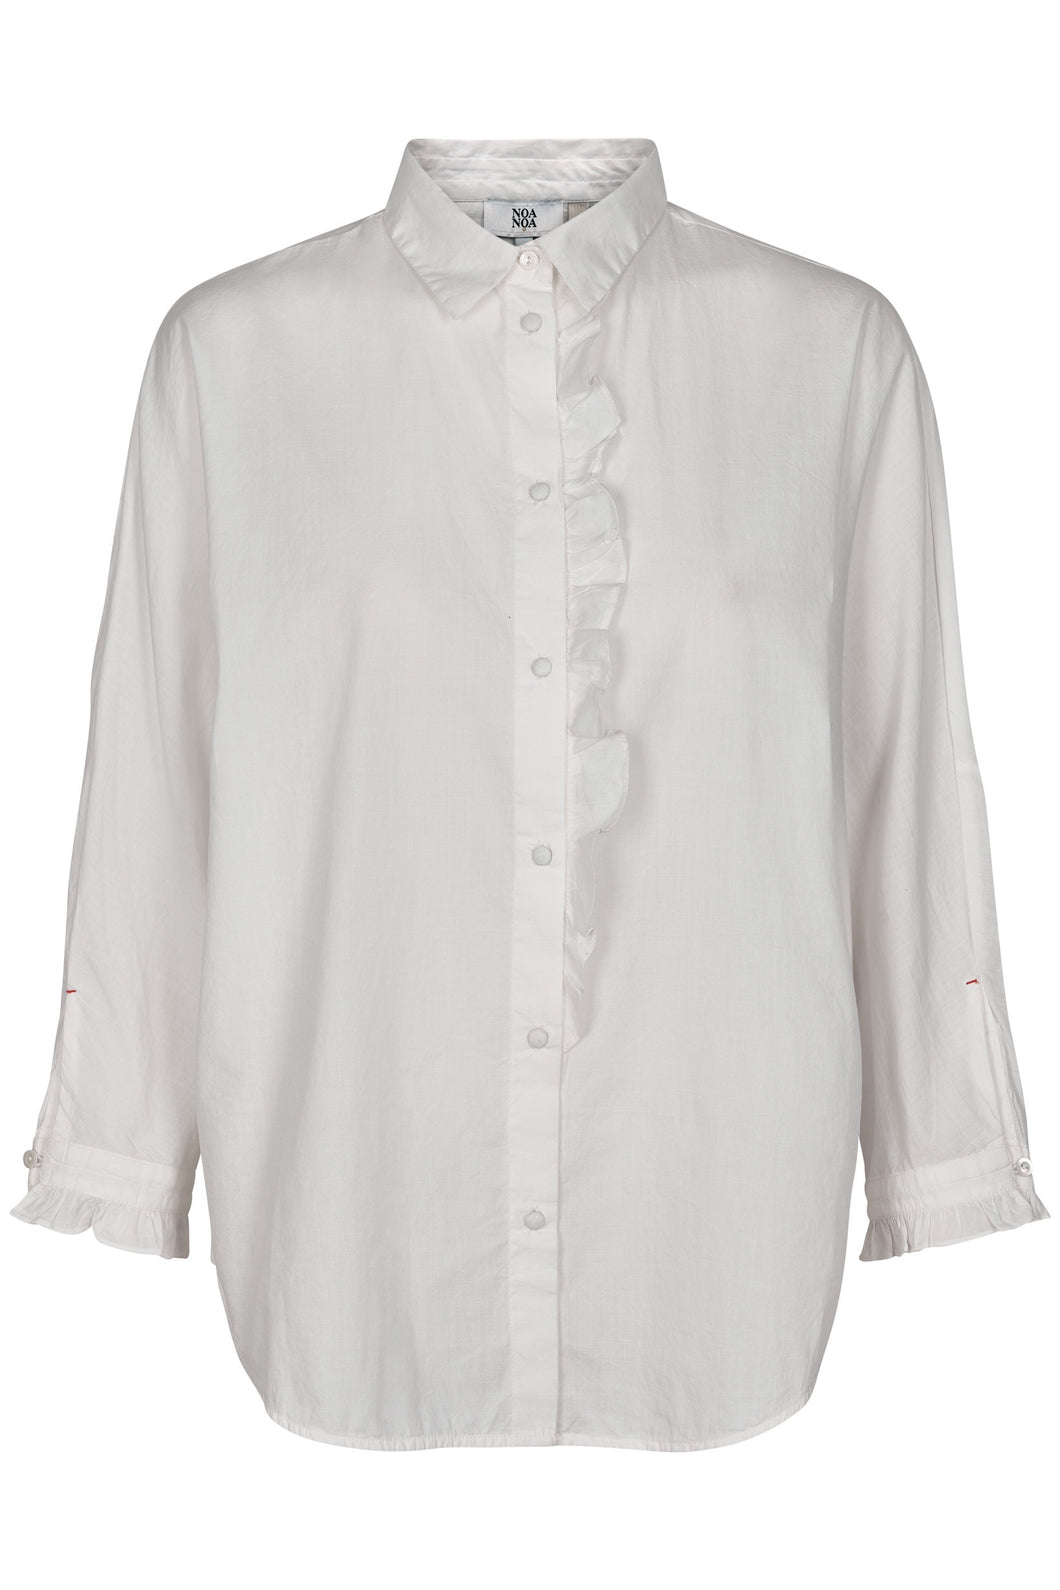 Ruffle Detail Shirt - Cloud Dancer